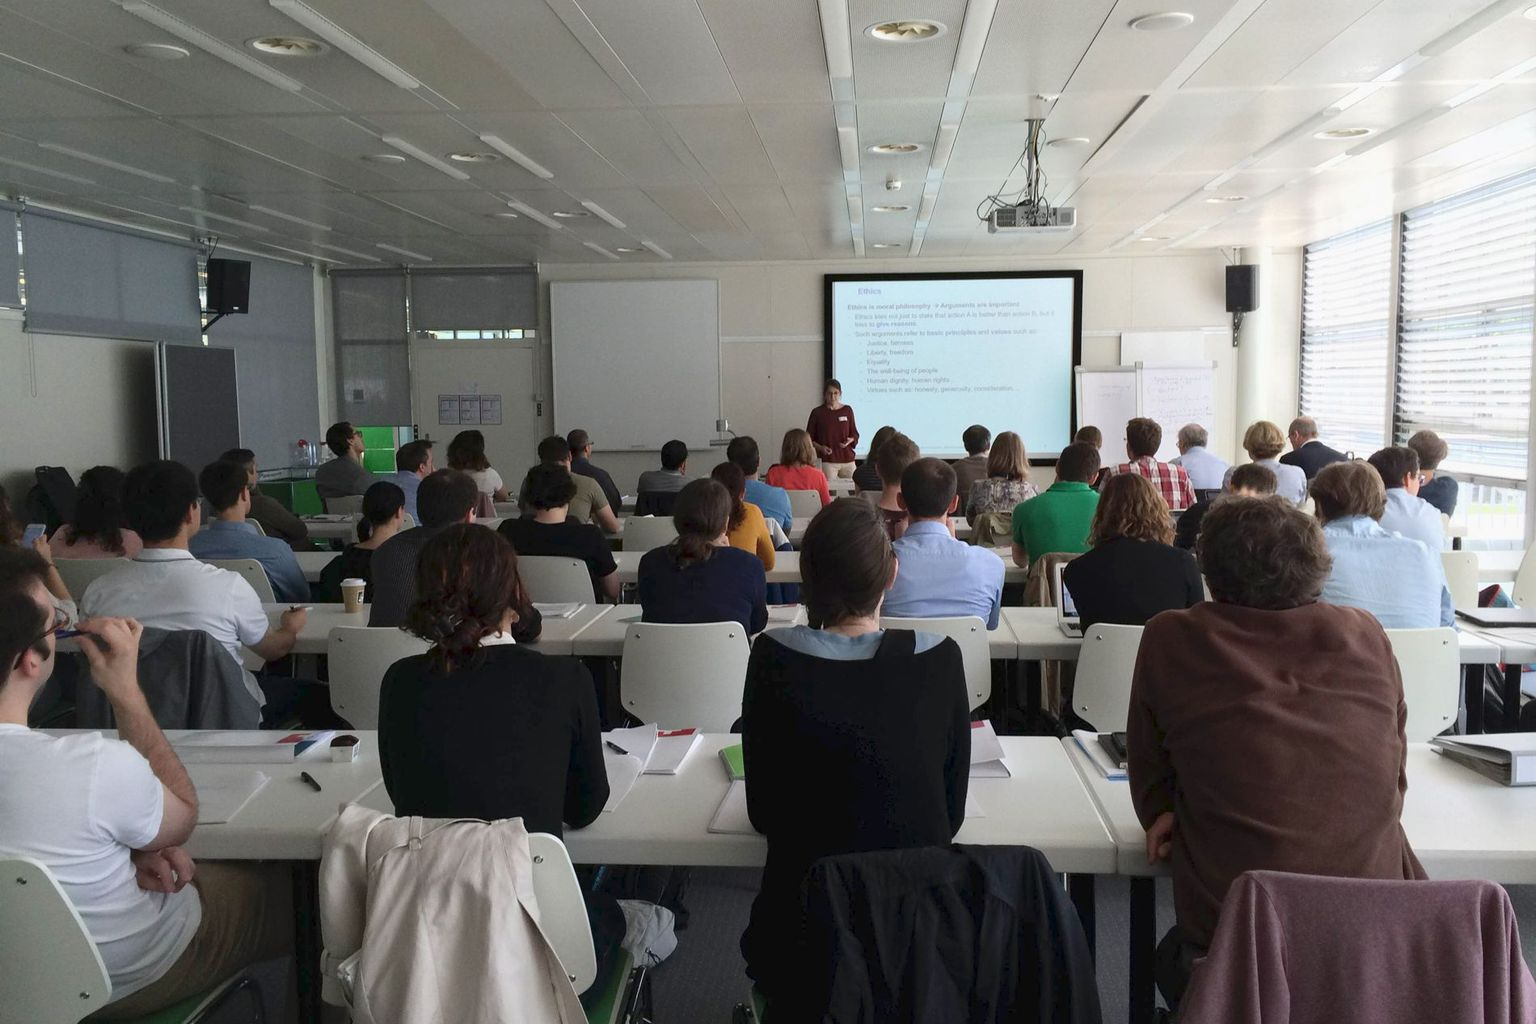 Over 40 PhD students and postdocs attended the course.